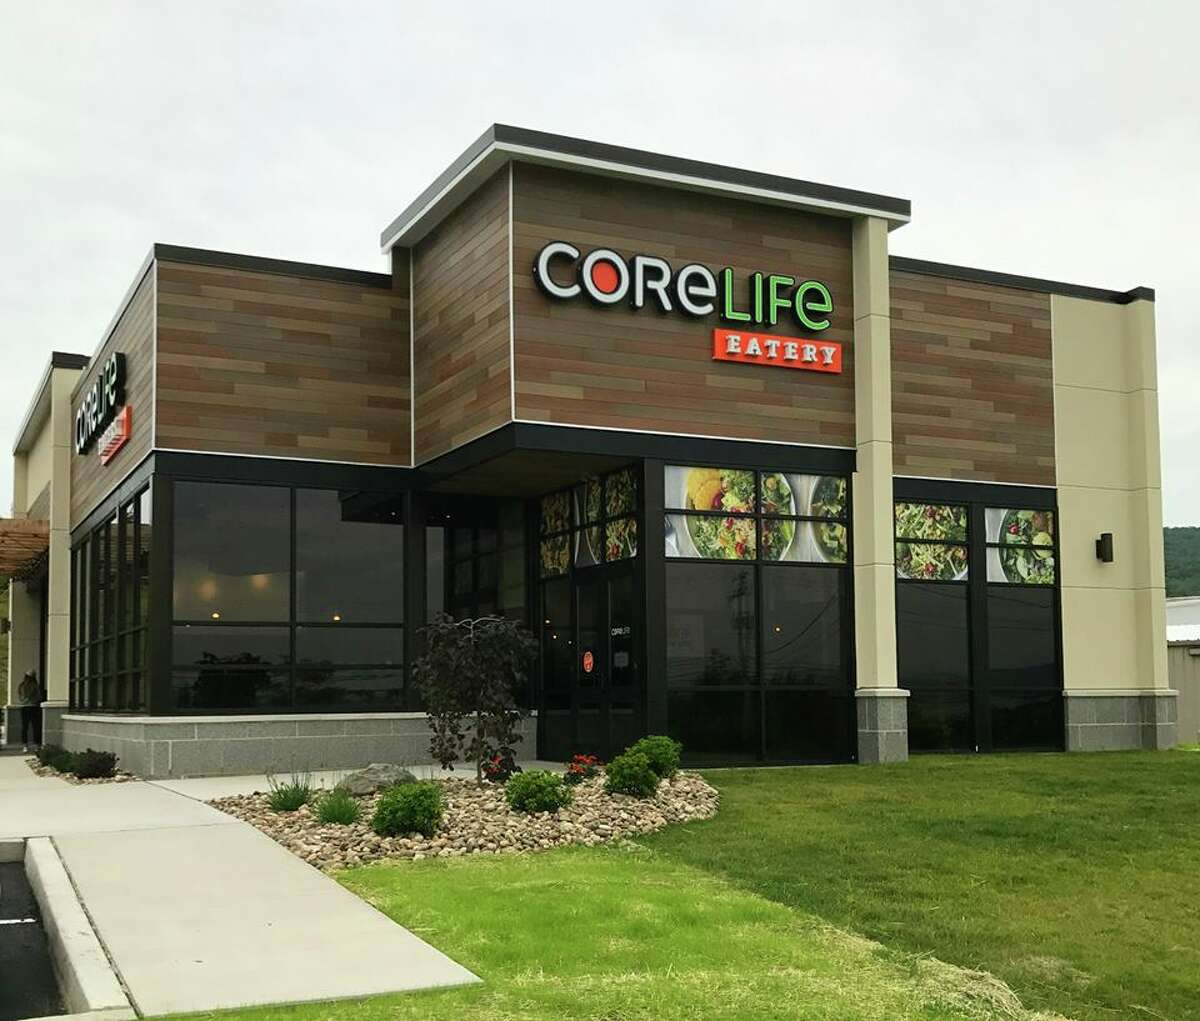 Coming soon: CoreLife Eatery, a Syracuse-based chain that offers healthful foods, has plans for restaurants in Latham Farms (next to Dick's Sporting Goods) and at the Residence 15 at Village Plaza in Clifton Park.